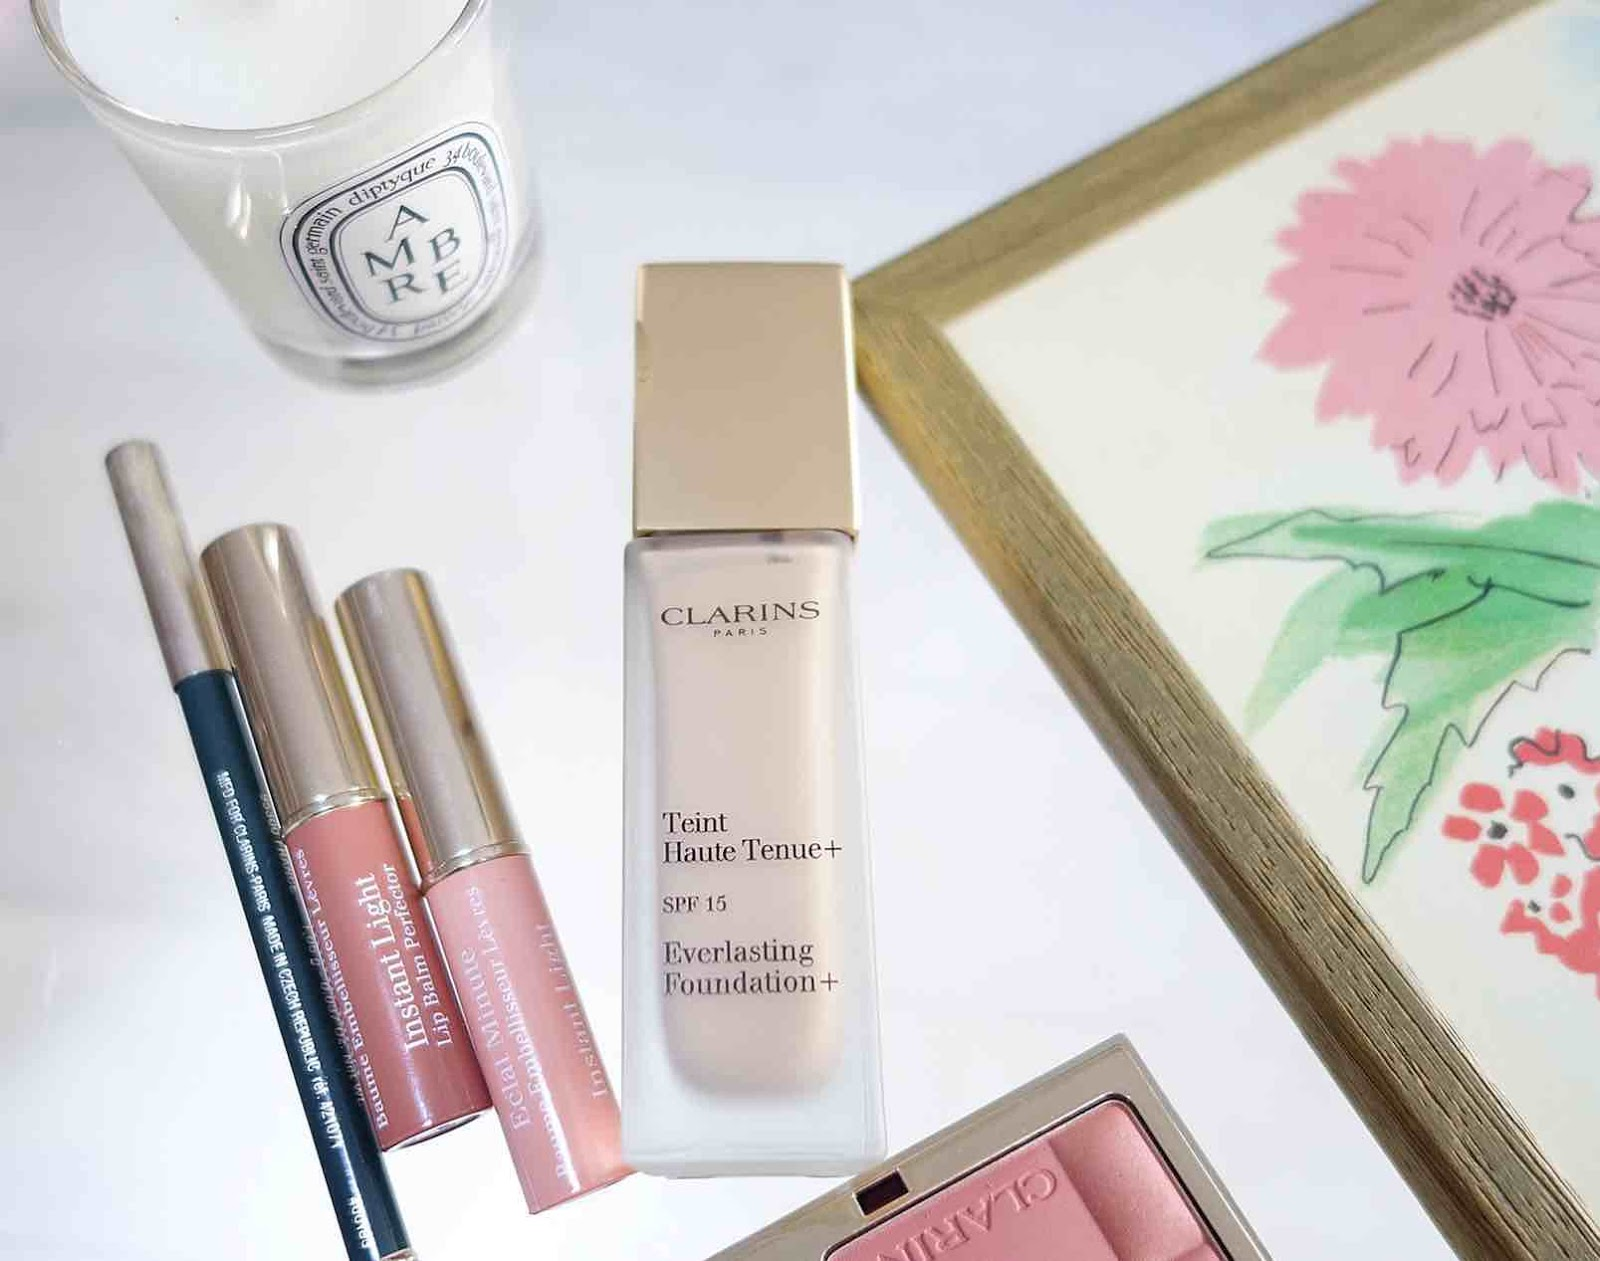 Clarins-Everlasting-Foundation+-Review-and-Swatches